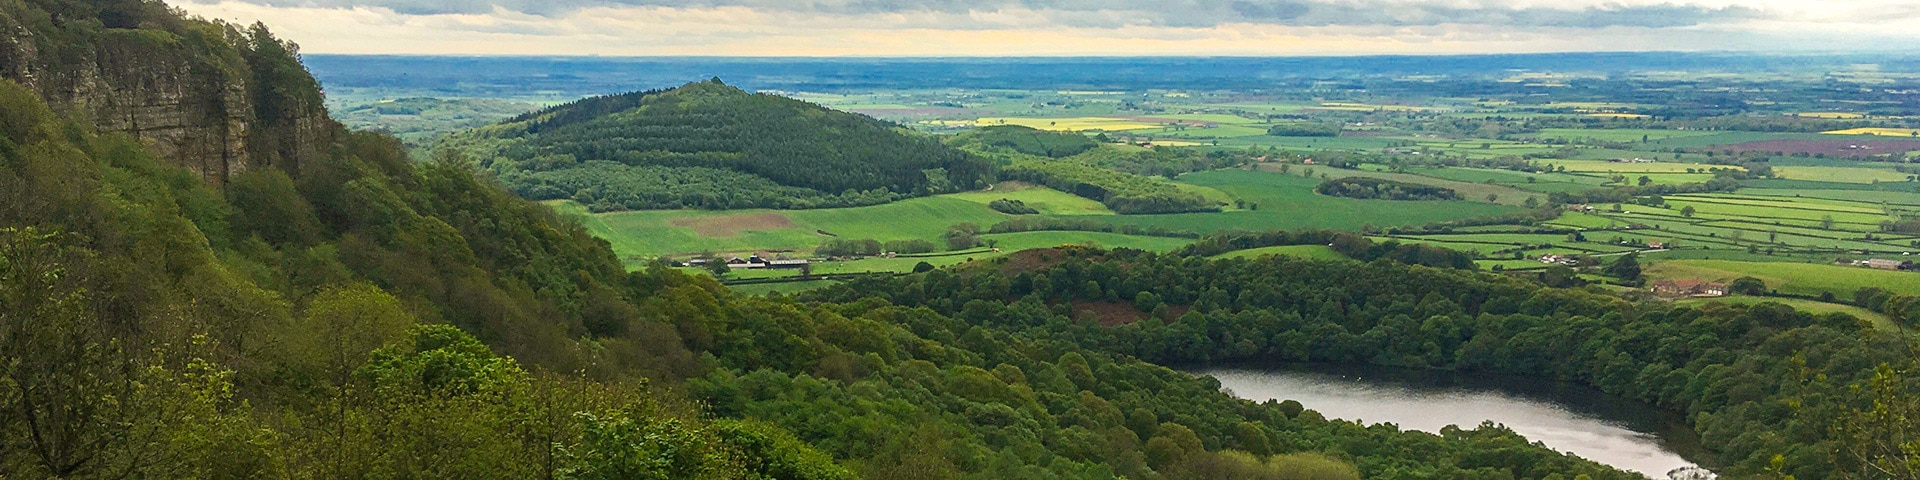 Panoramic views from the Sutton Bank, White Horse of Kilburn and Gormire Lake walk in North York Moors, England